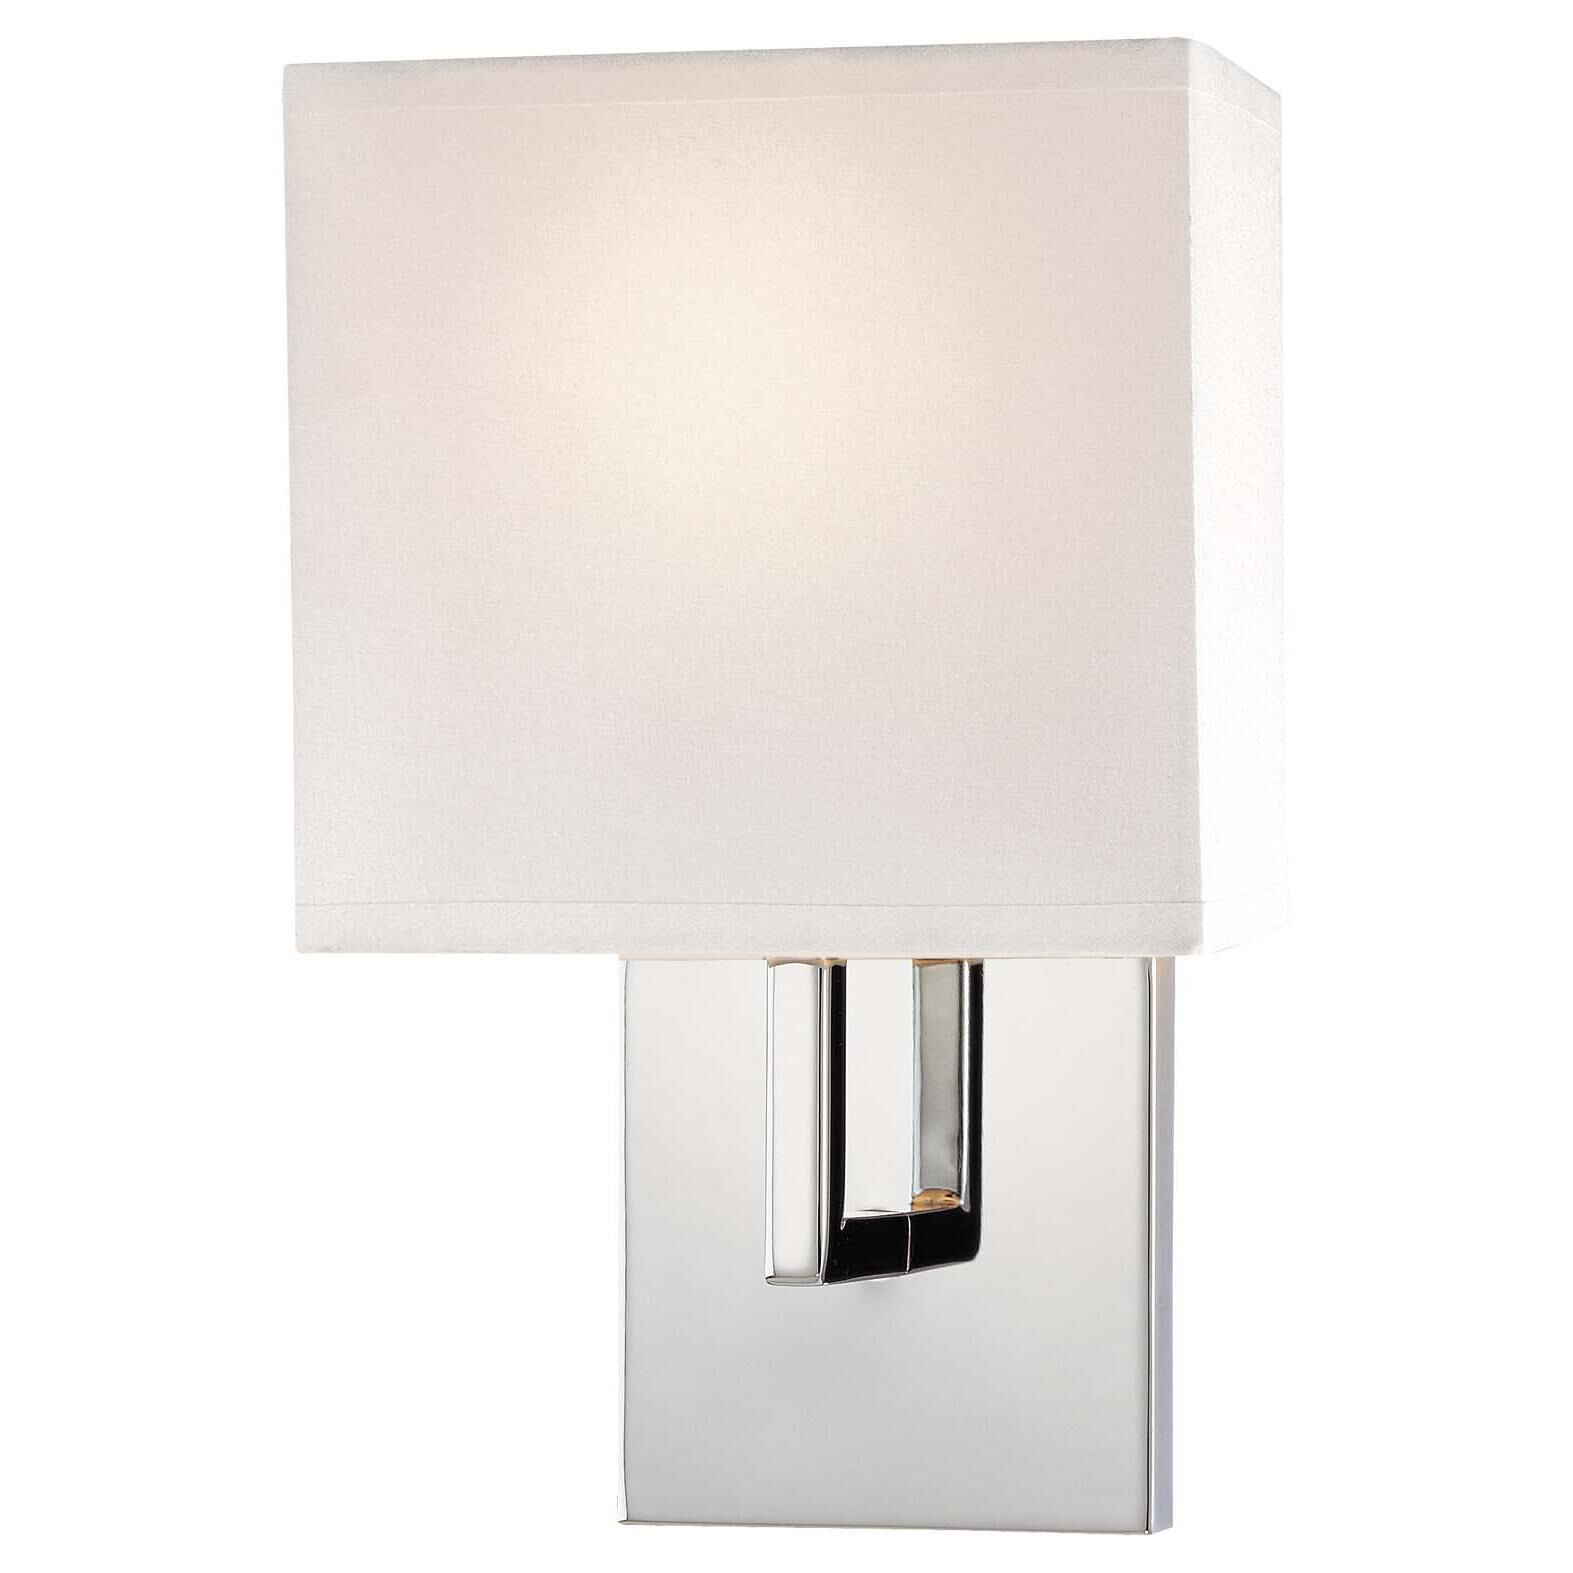 Kovacs 11 Inch Wall Sconce - P470-077 - Transitional